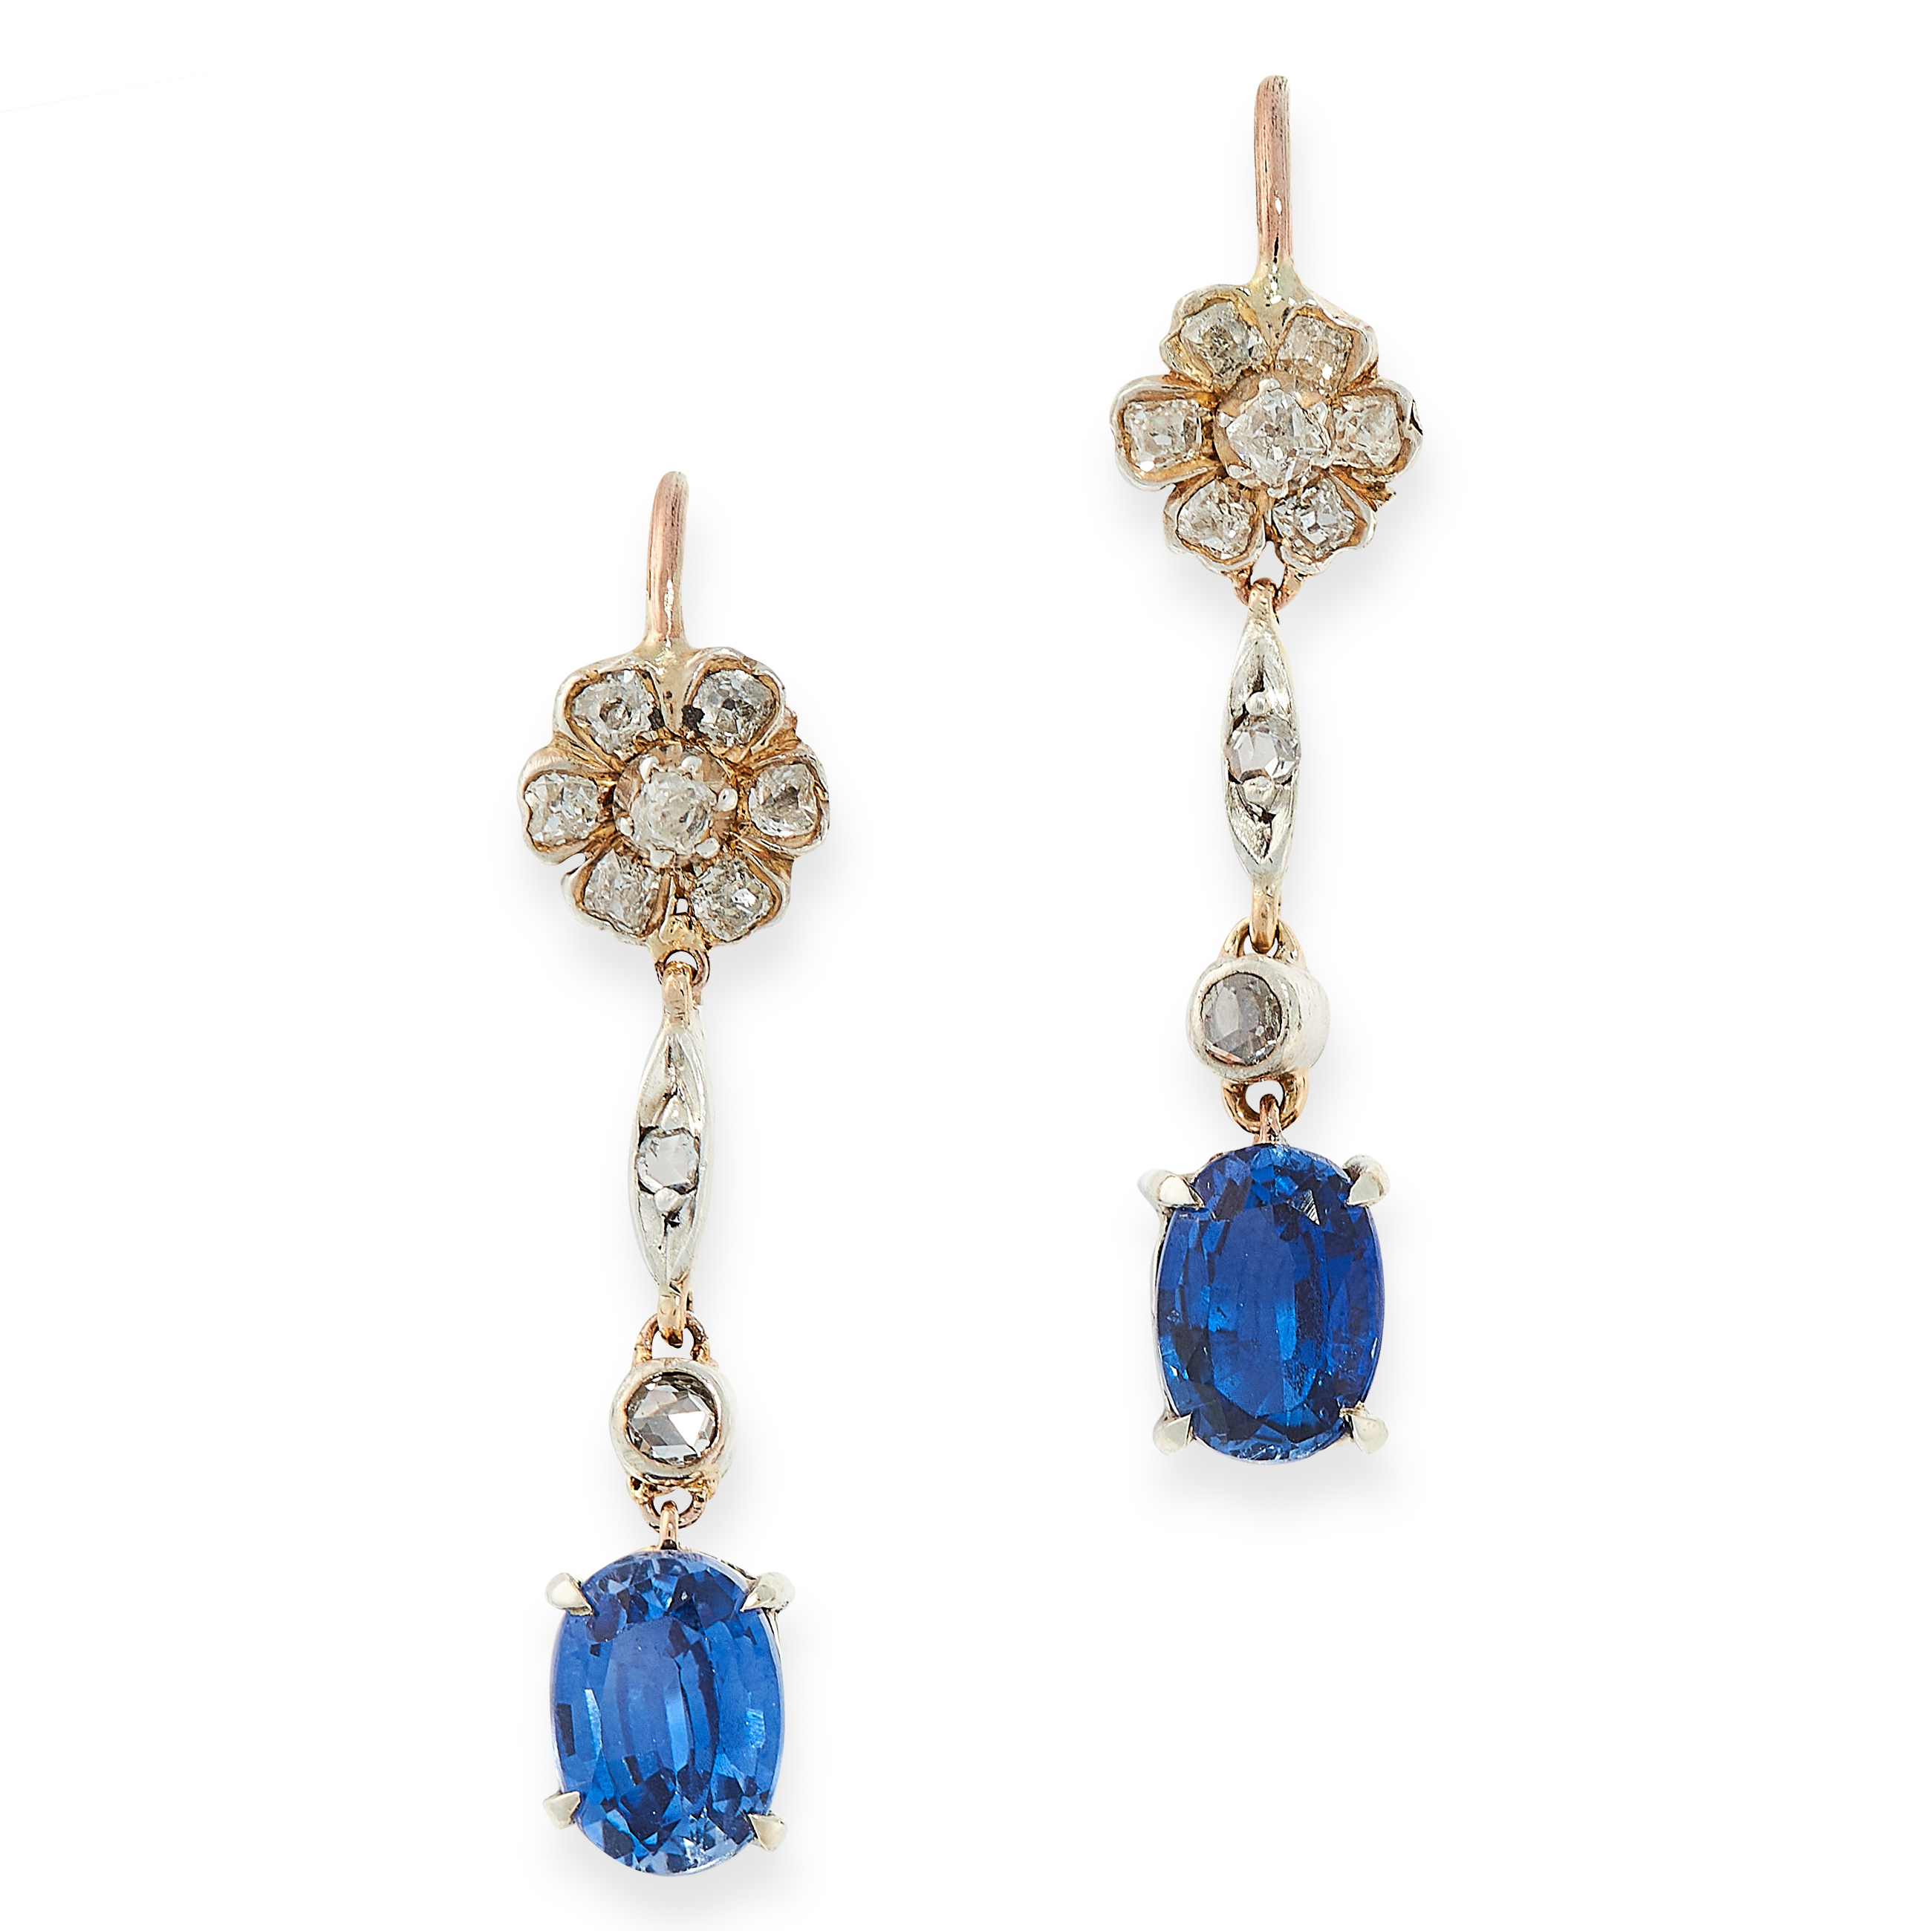 PAIR OF SAPPHIRE AND DIAMOND DROP EARRINGS comprising of a floral cluster set with old cut diamonds,